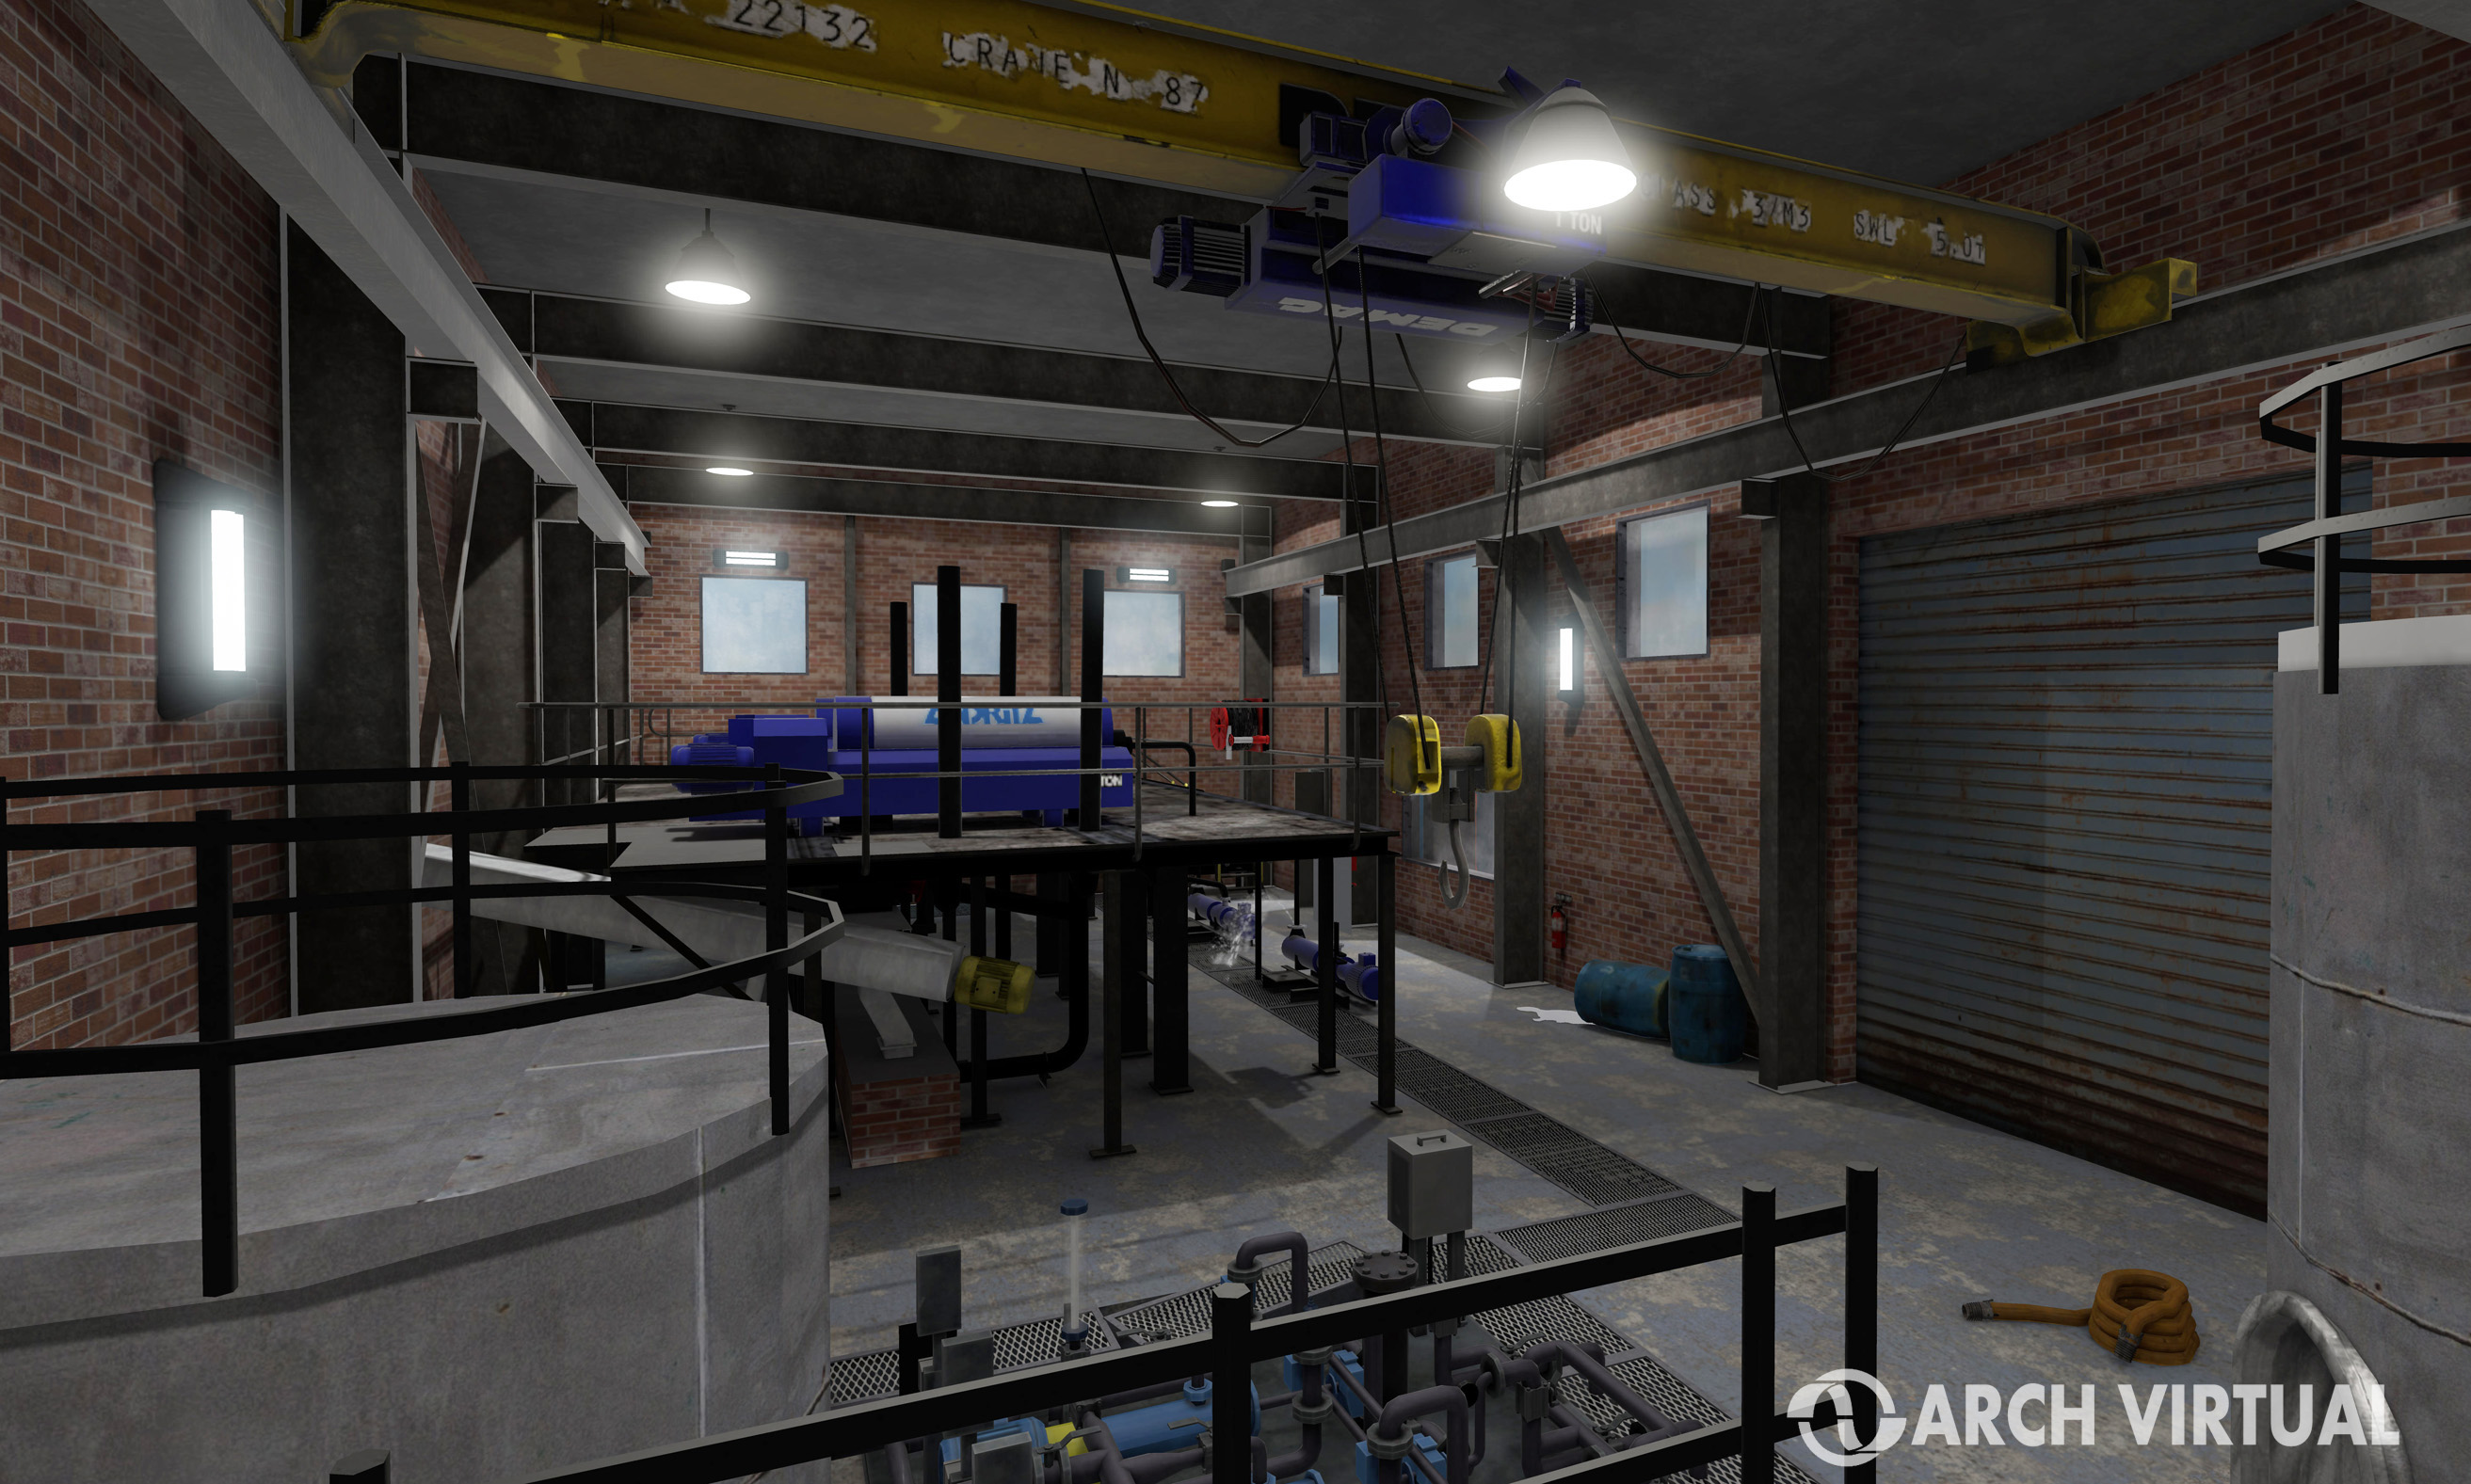 New Oculus Rift App: Safety Training and Trade Show ...